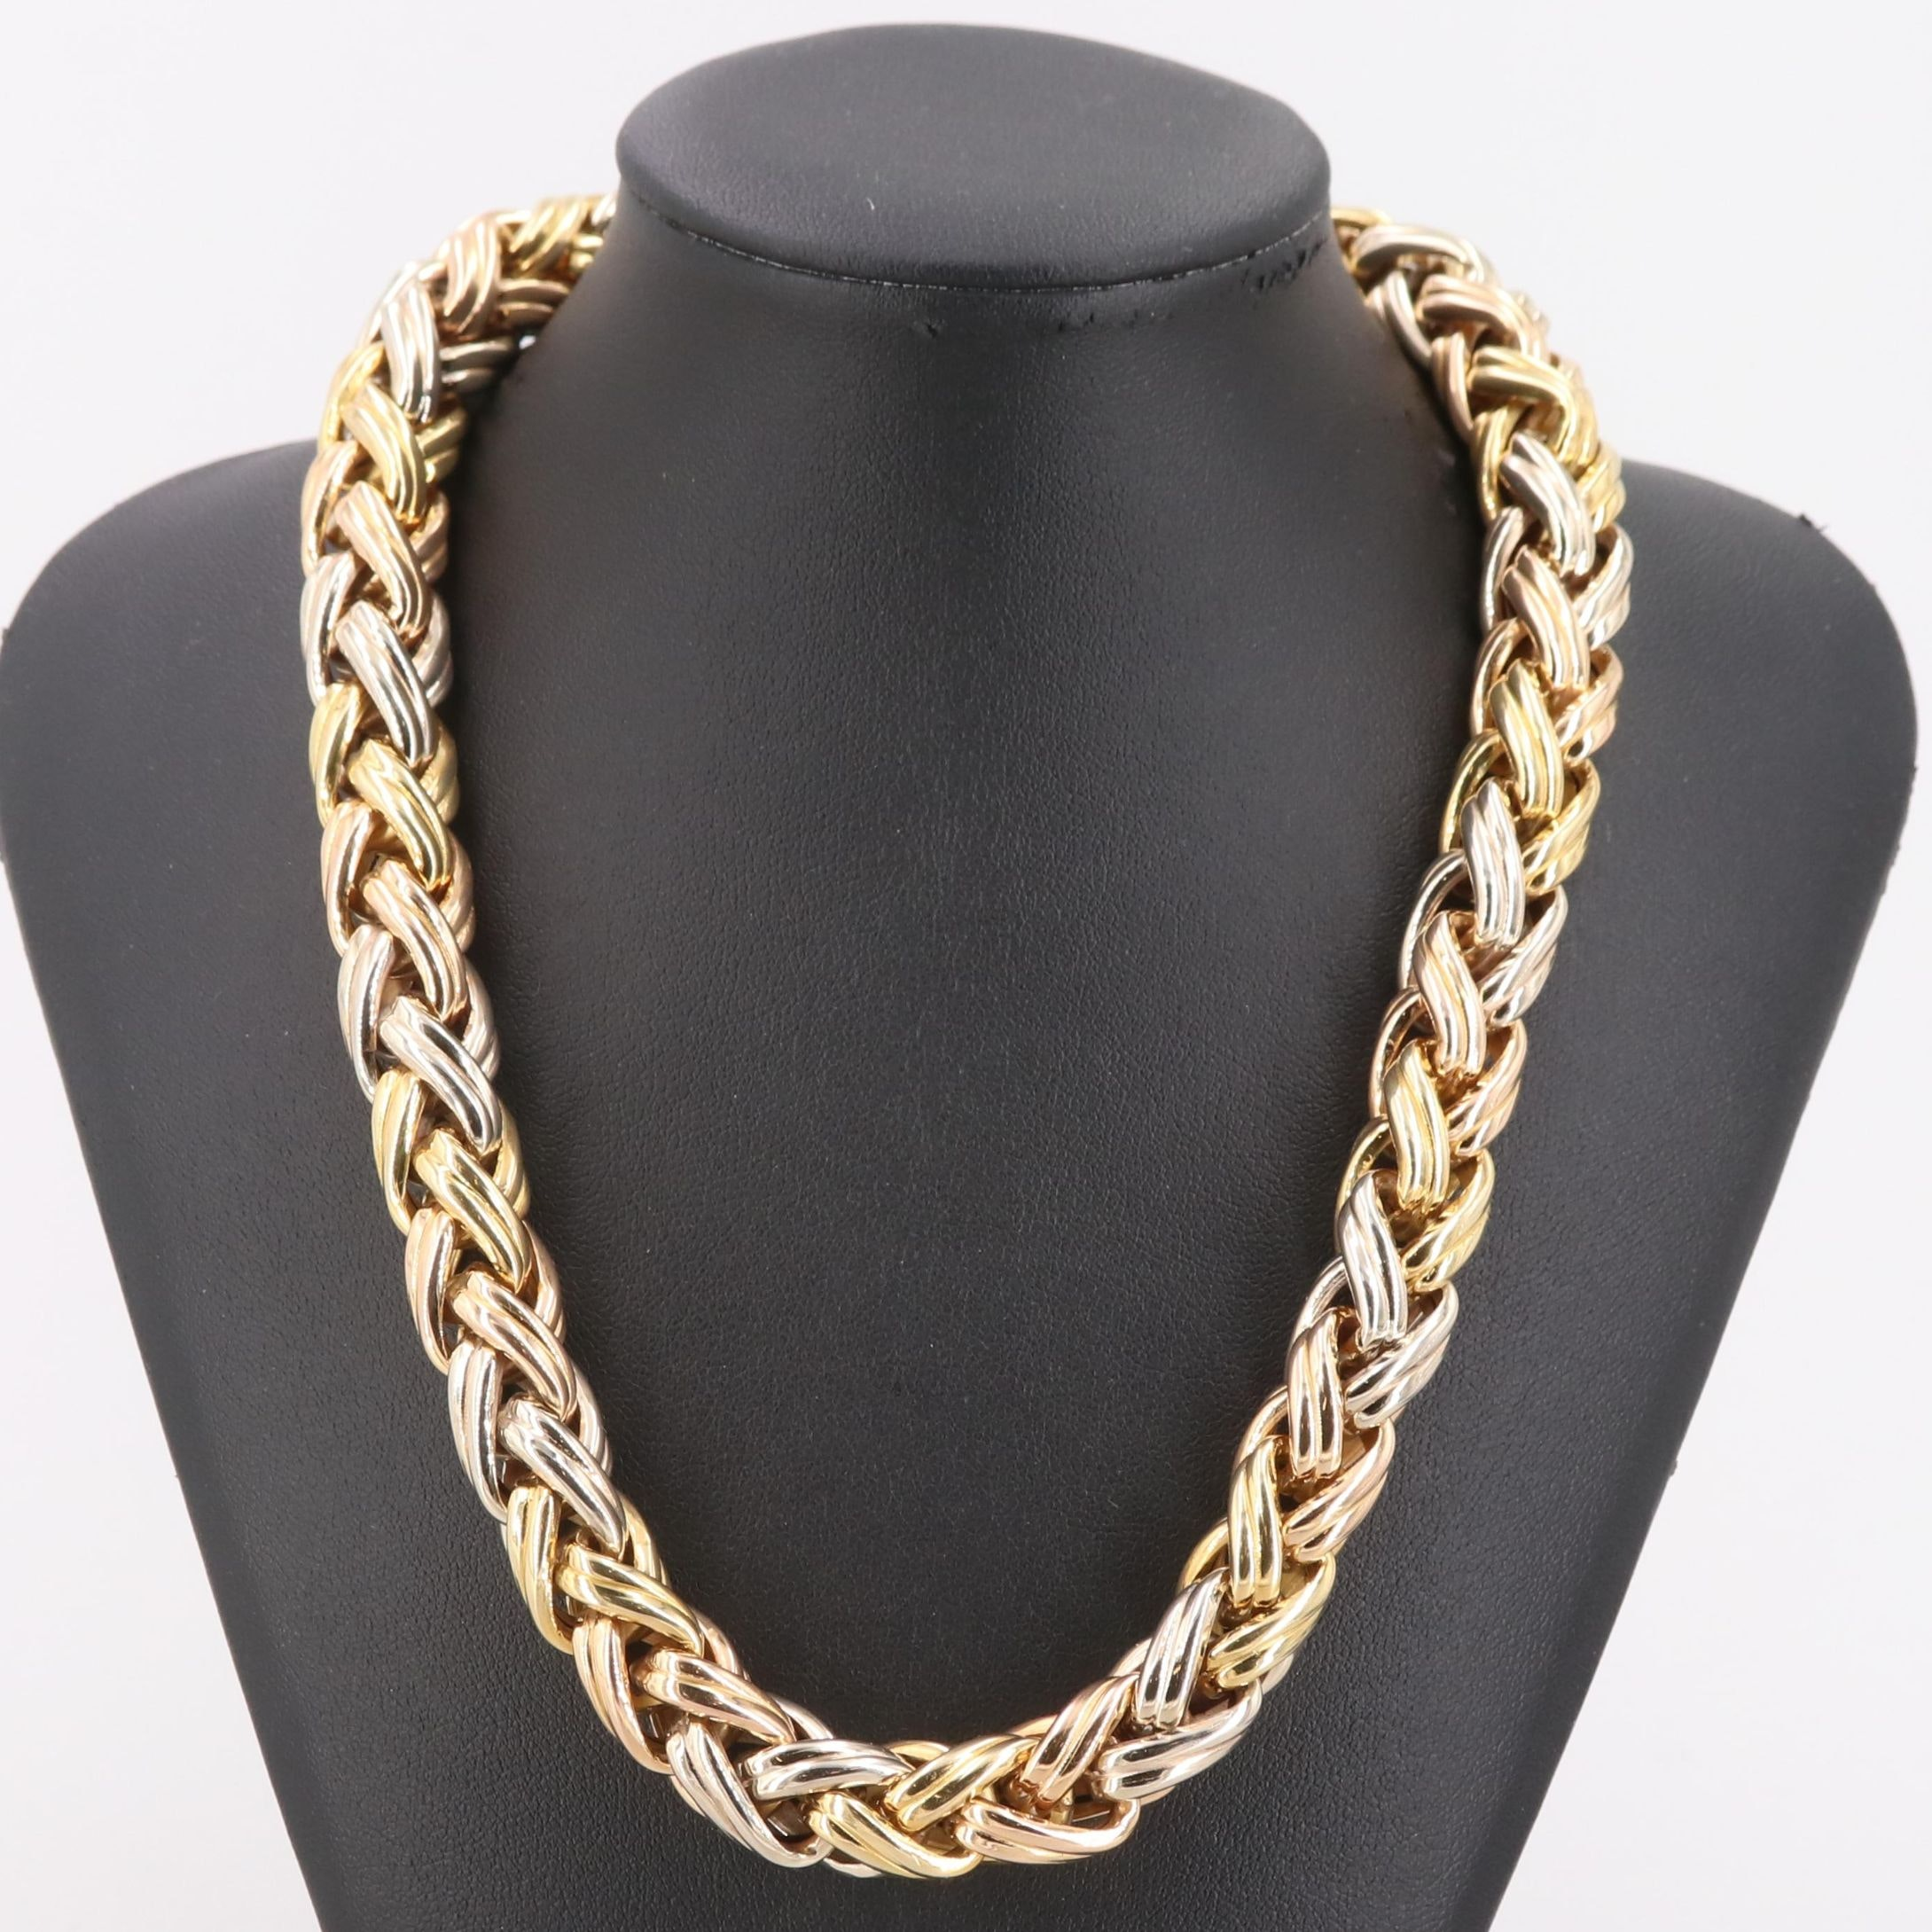 Italian 18K Tri-Color Gold Braided Link Necklace